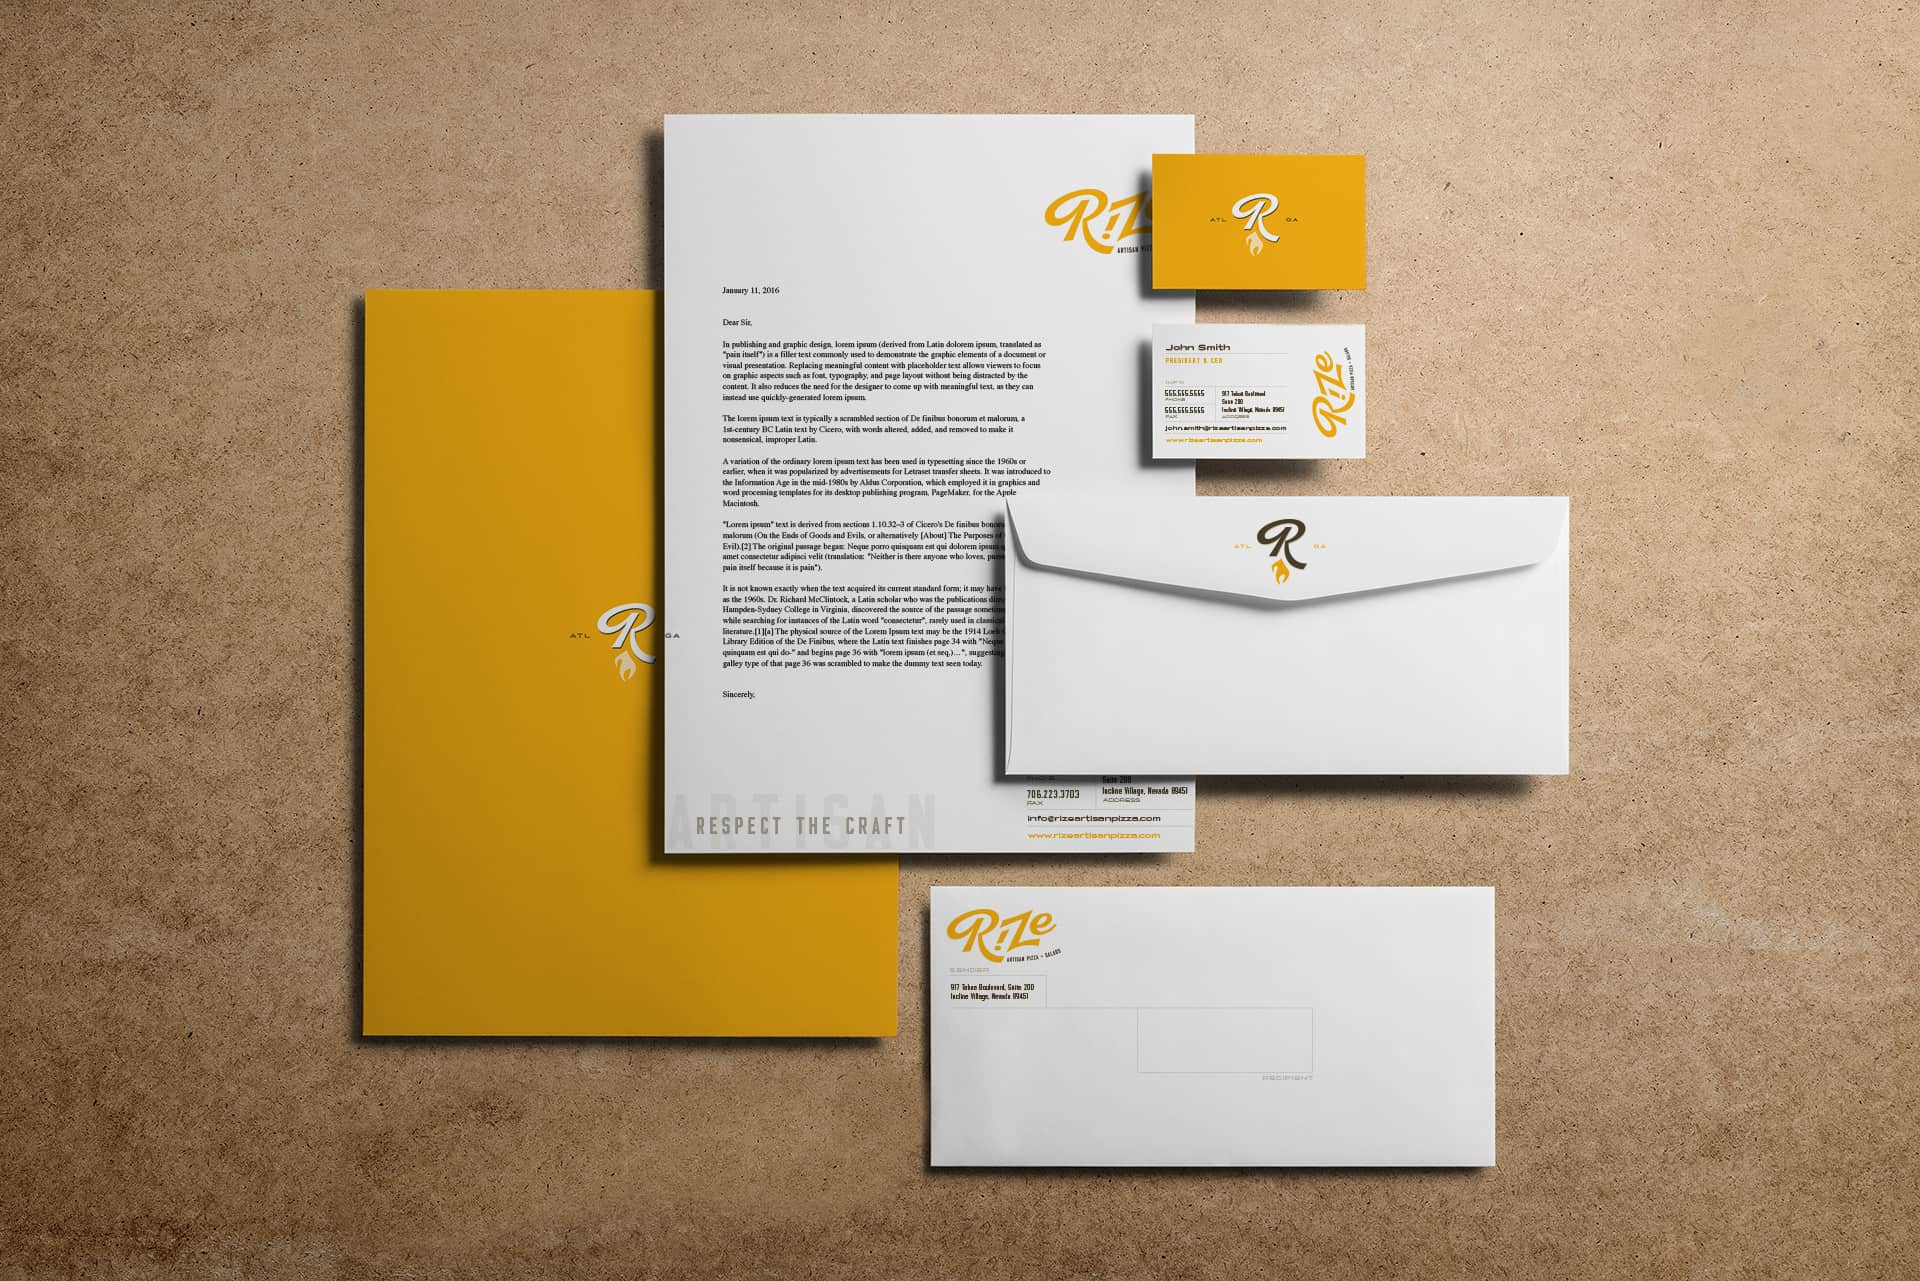 Rize Artisan Pizza fast casual restaurant branding and concept development stationery and identity design